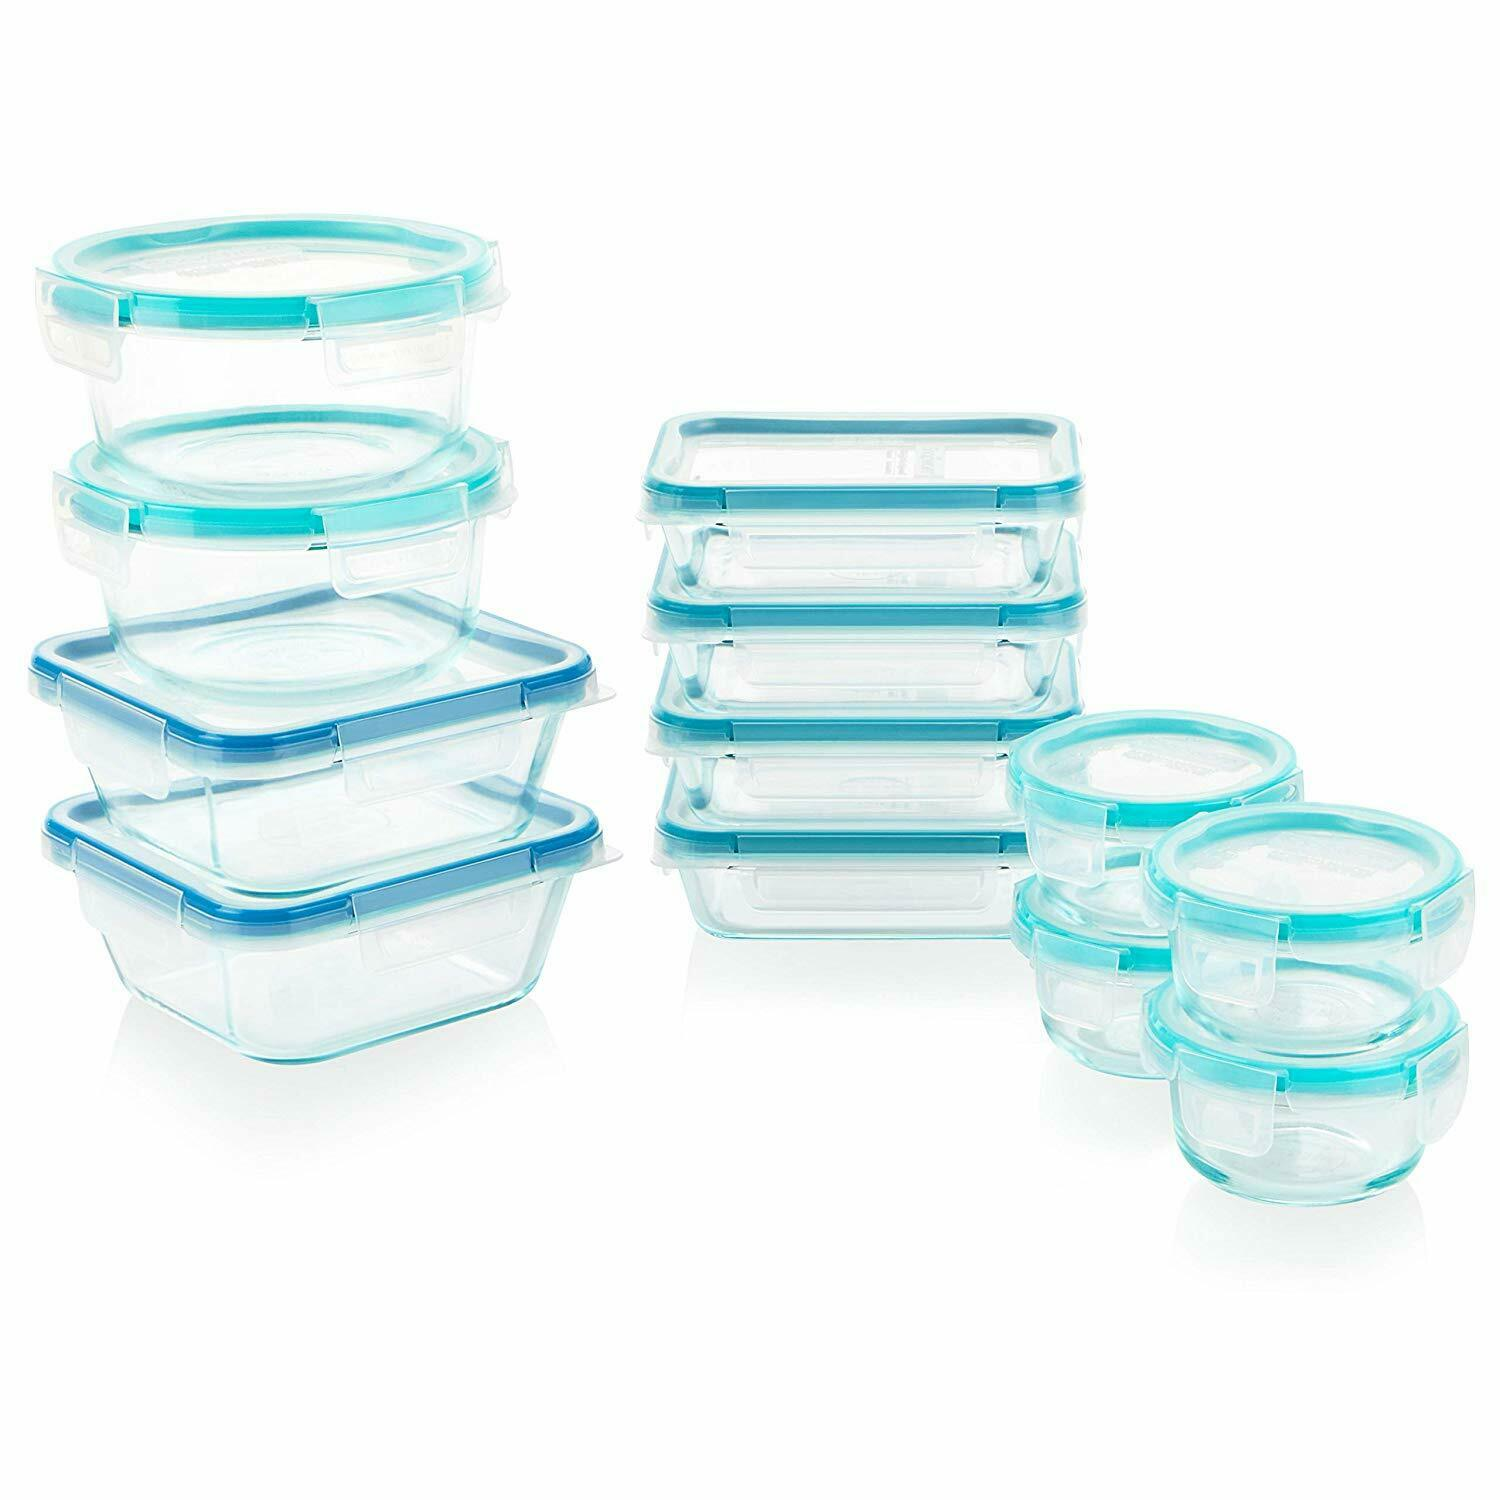 Snapware 1122515 Glass Food Storage Set, 24-Piece, Clear 1